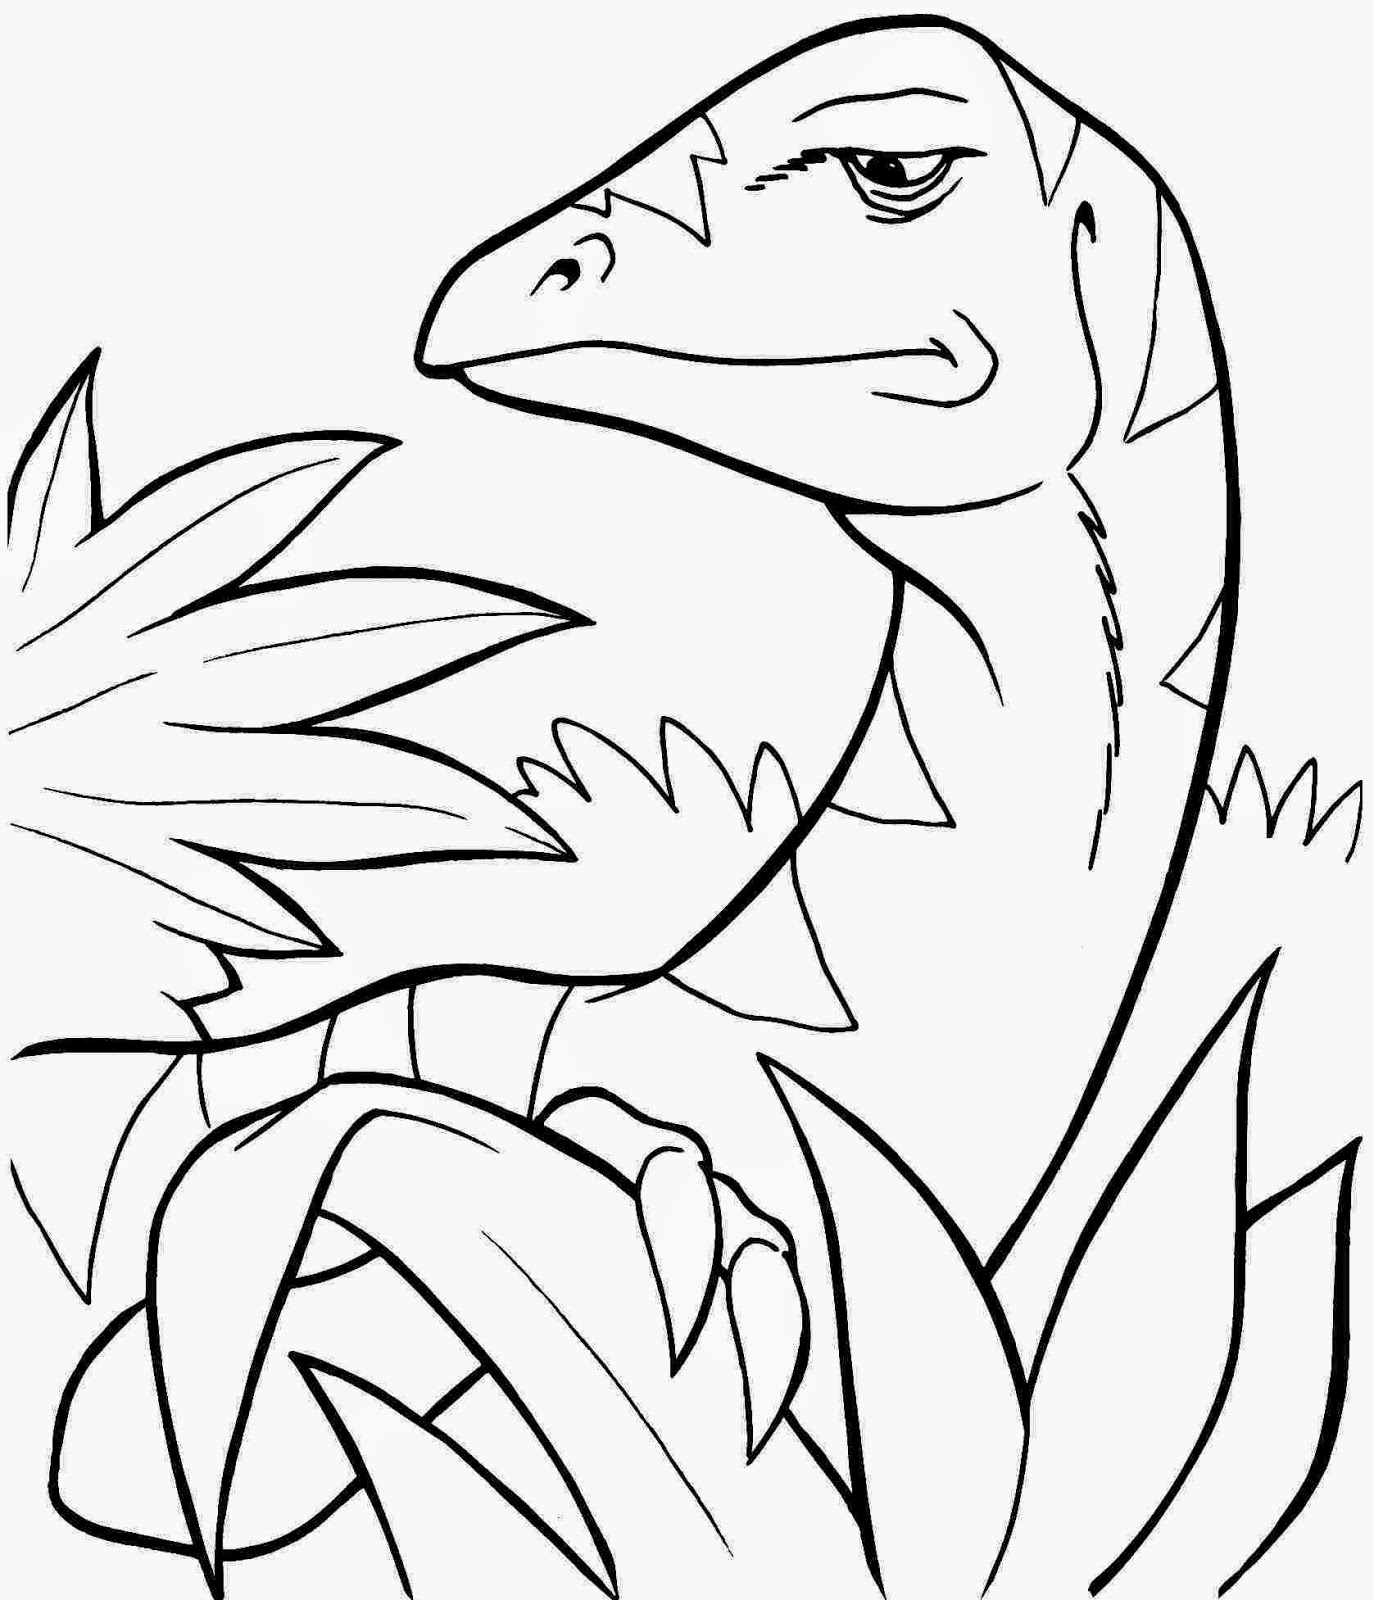 Adorable image with free printable dinosaur coloring pages